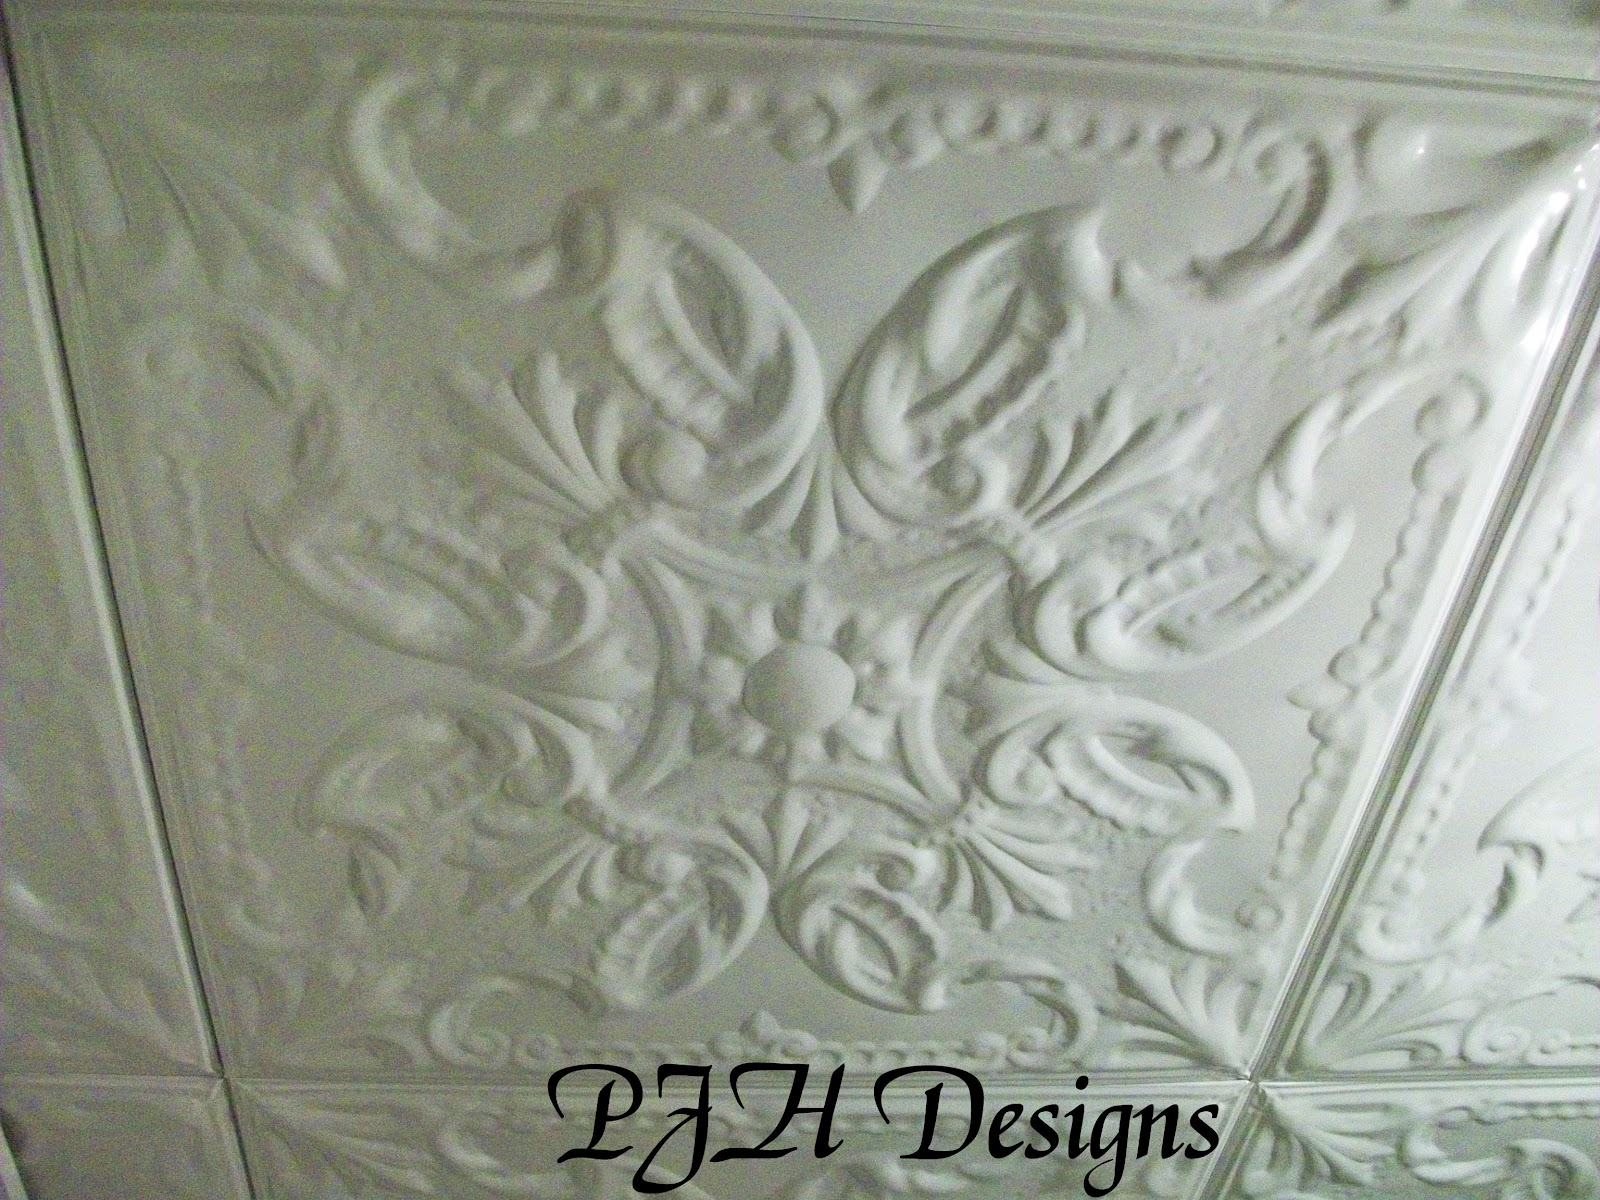 Pjh designs hand painted antique furniture kitchen remodel tin ceiling tiles - American tin tiles wallpaper ...